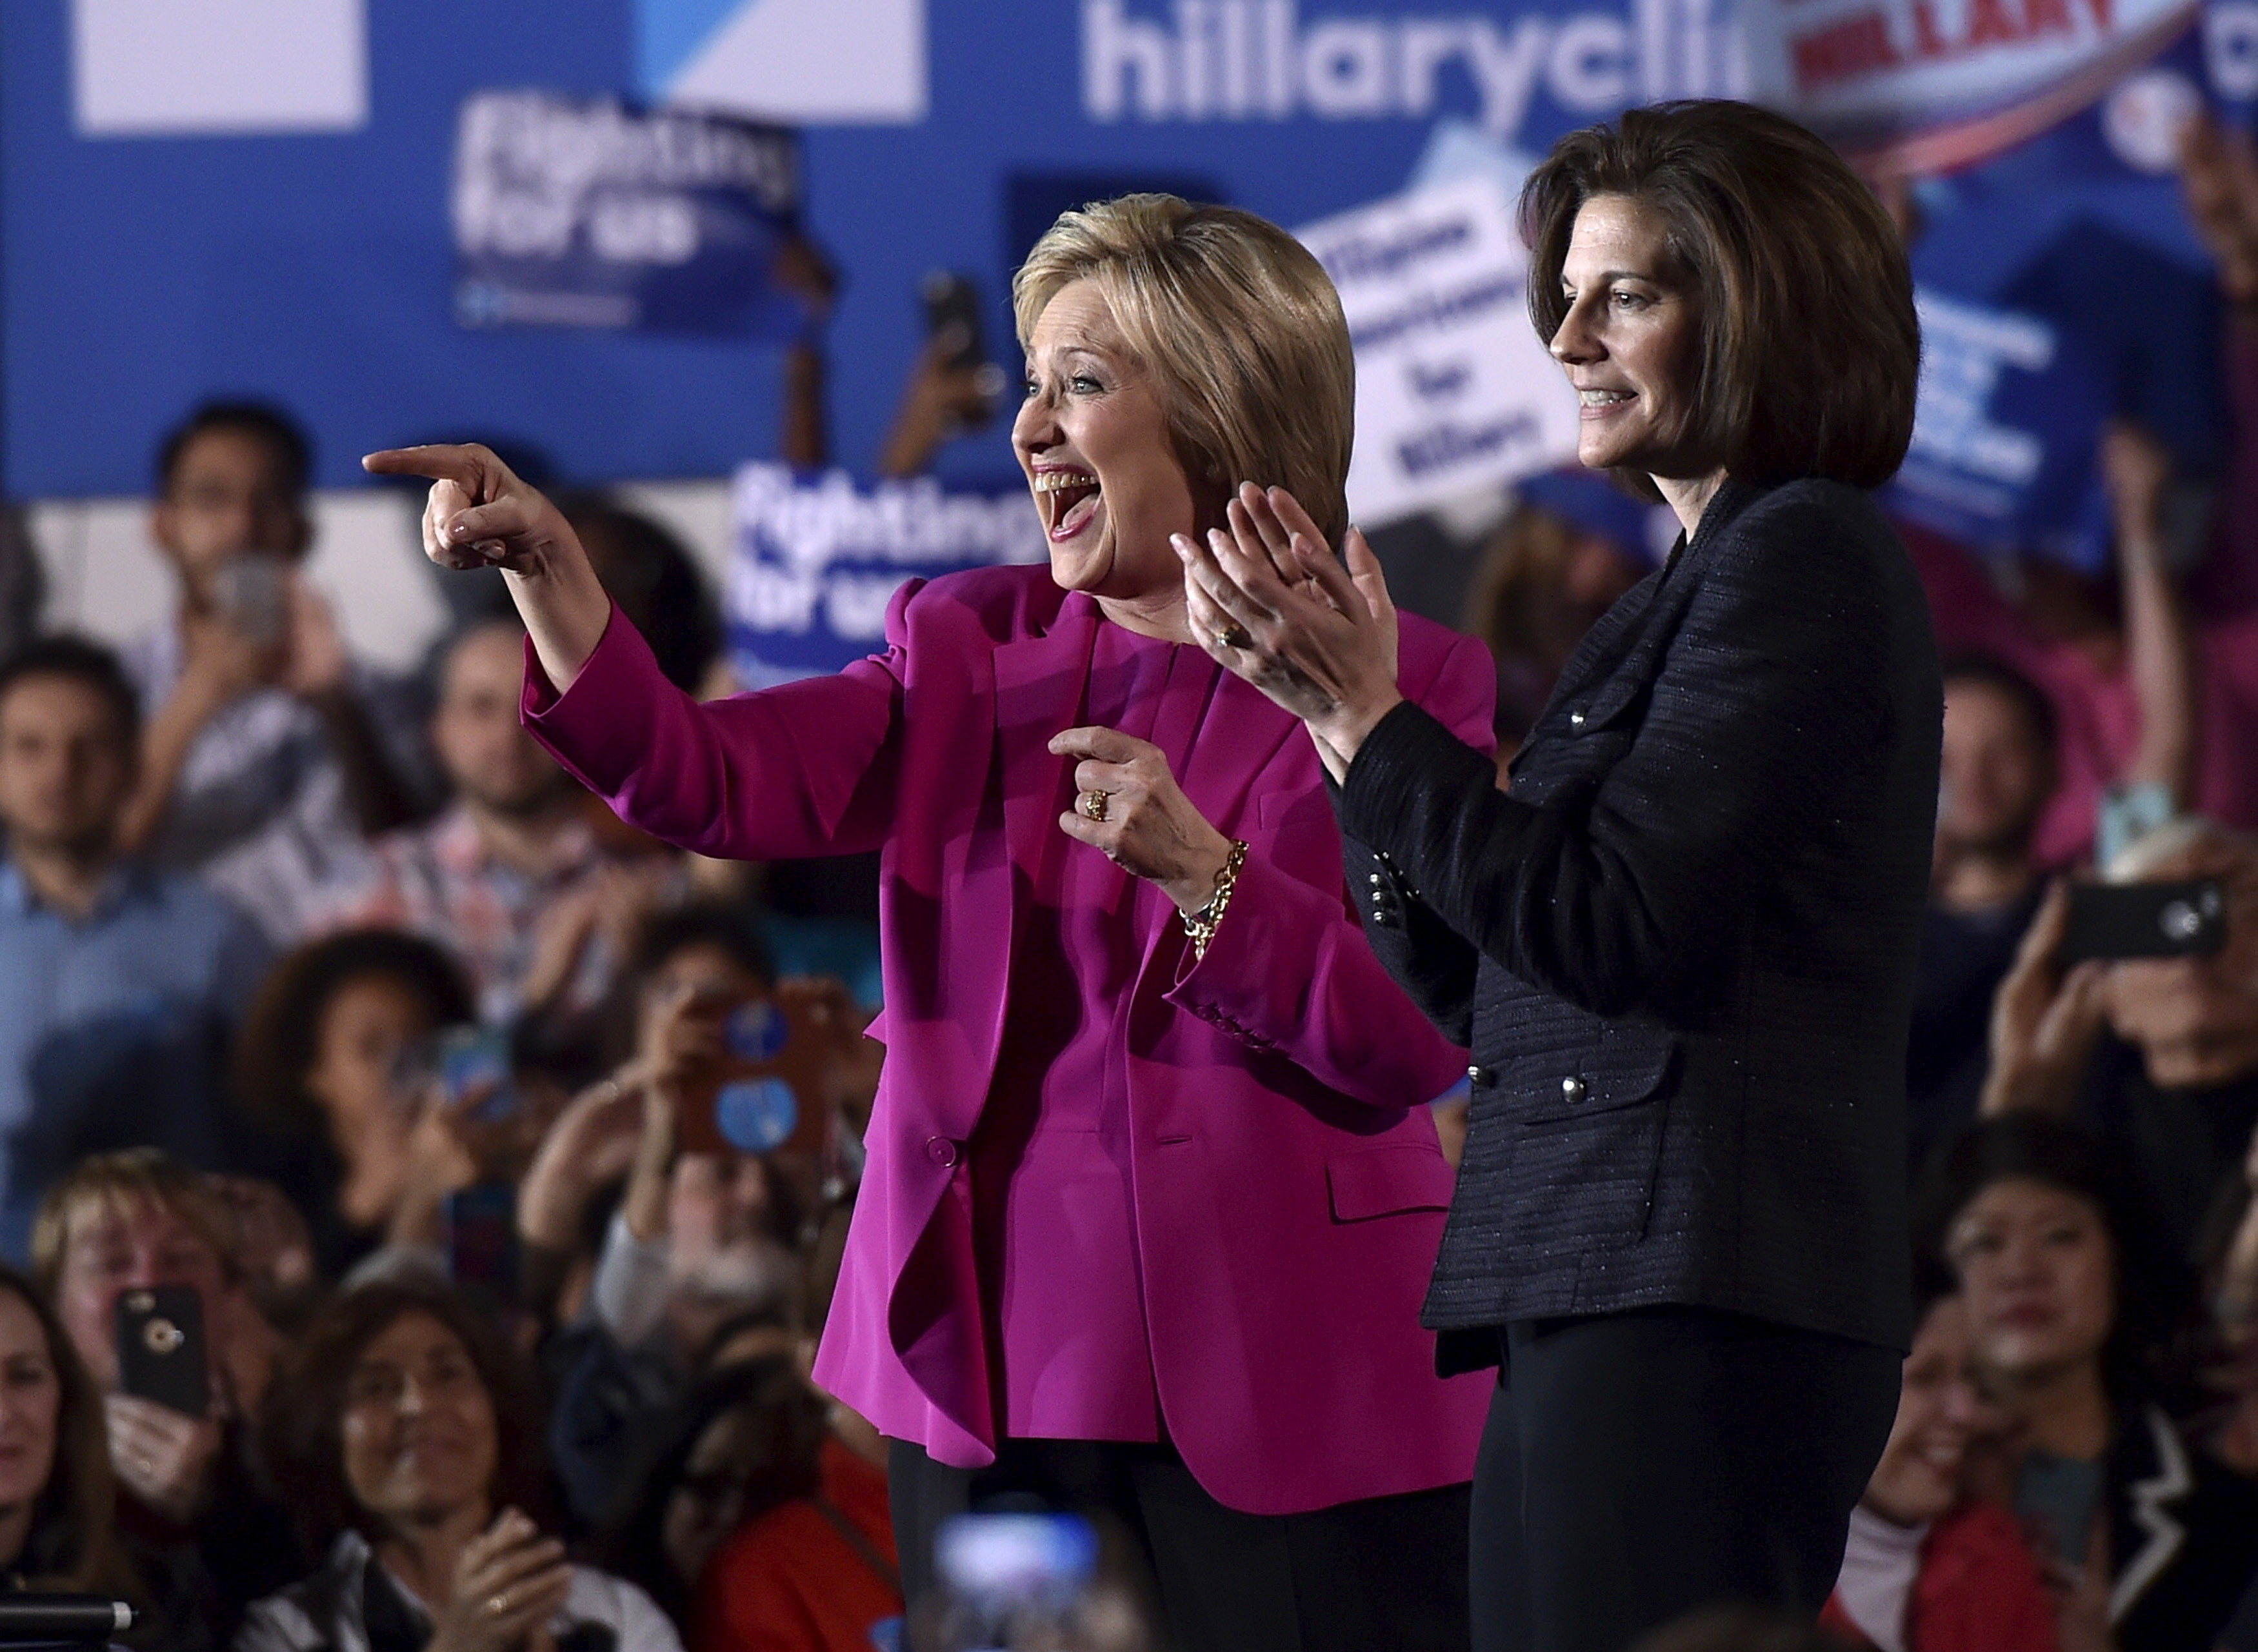 U.S. Democratic presidential candidate Hillary Clinton (L) appears on stage with Nevada Senate candidate Catherine Cortez Masto at a campaign rally at the Laborers International Union hall in Las Vegas, Nevada February 18, 2016.